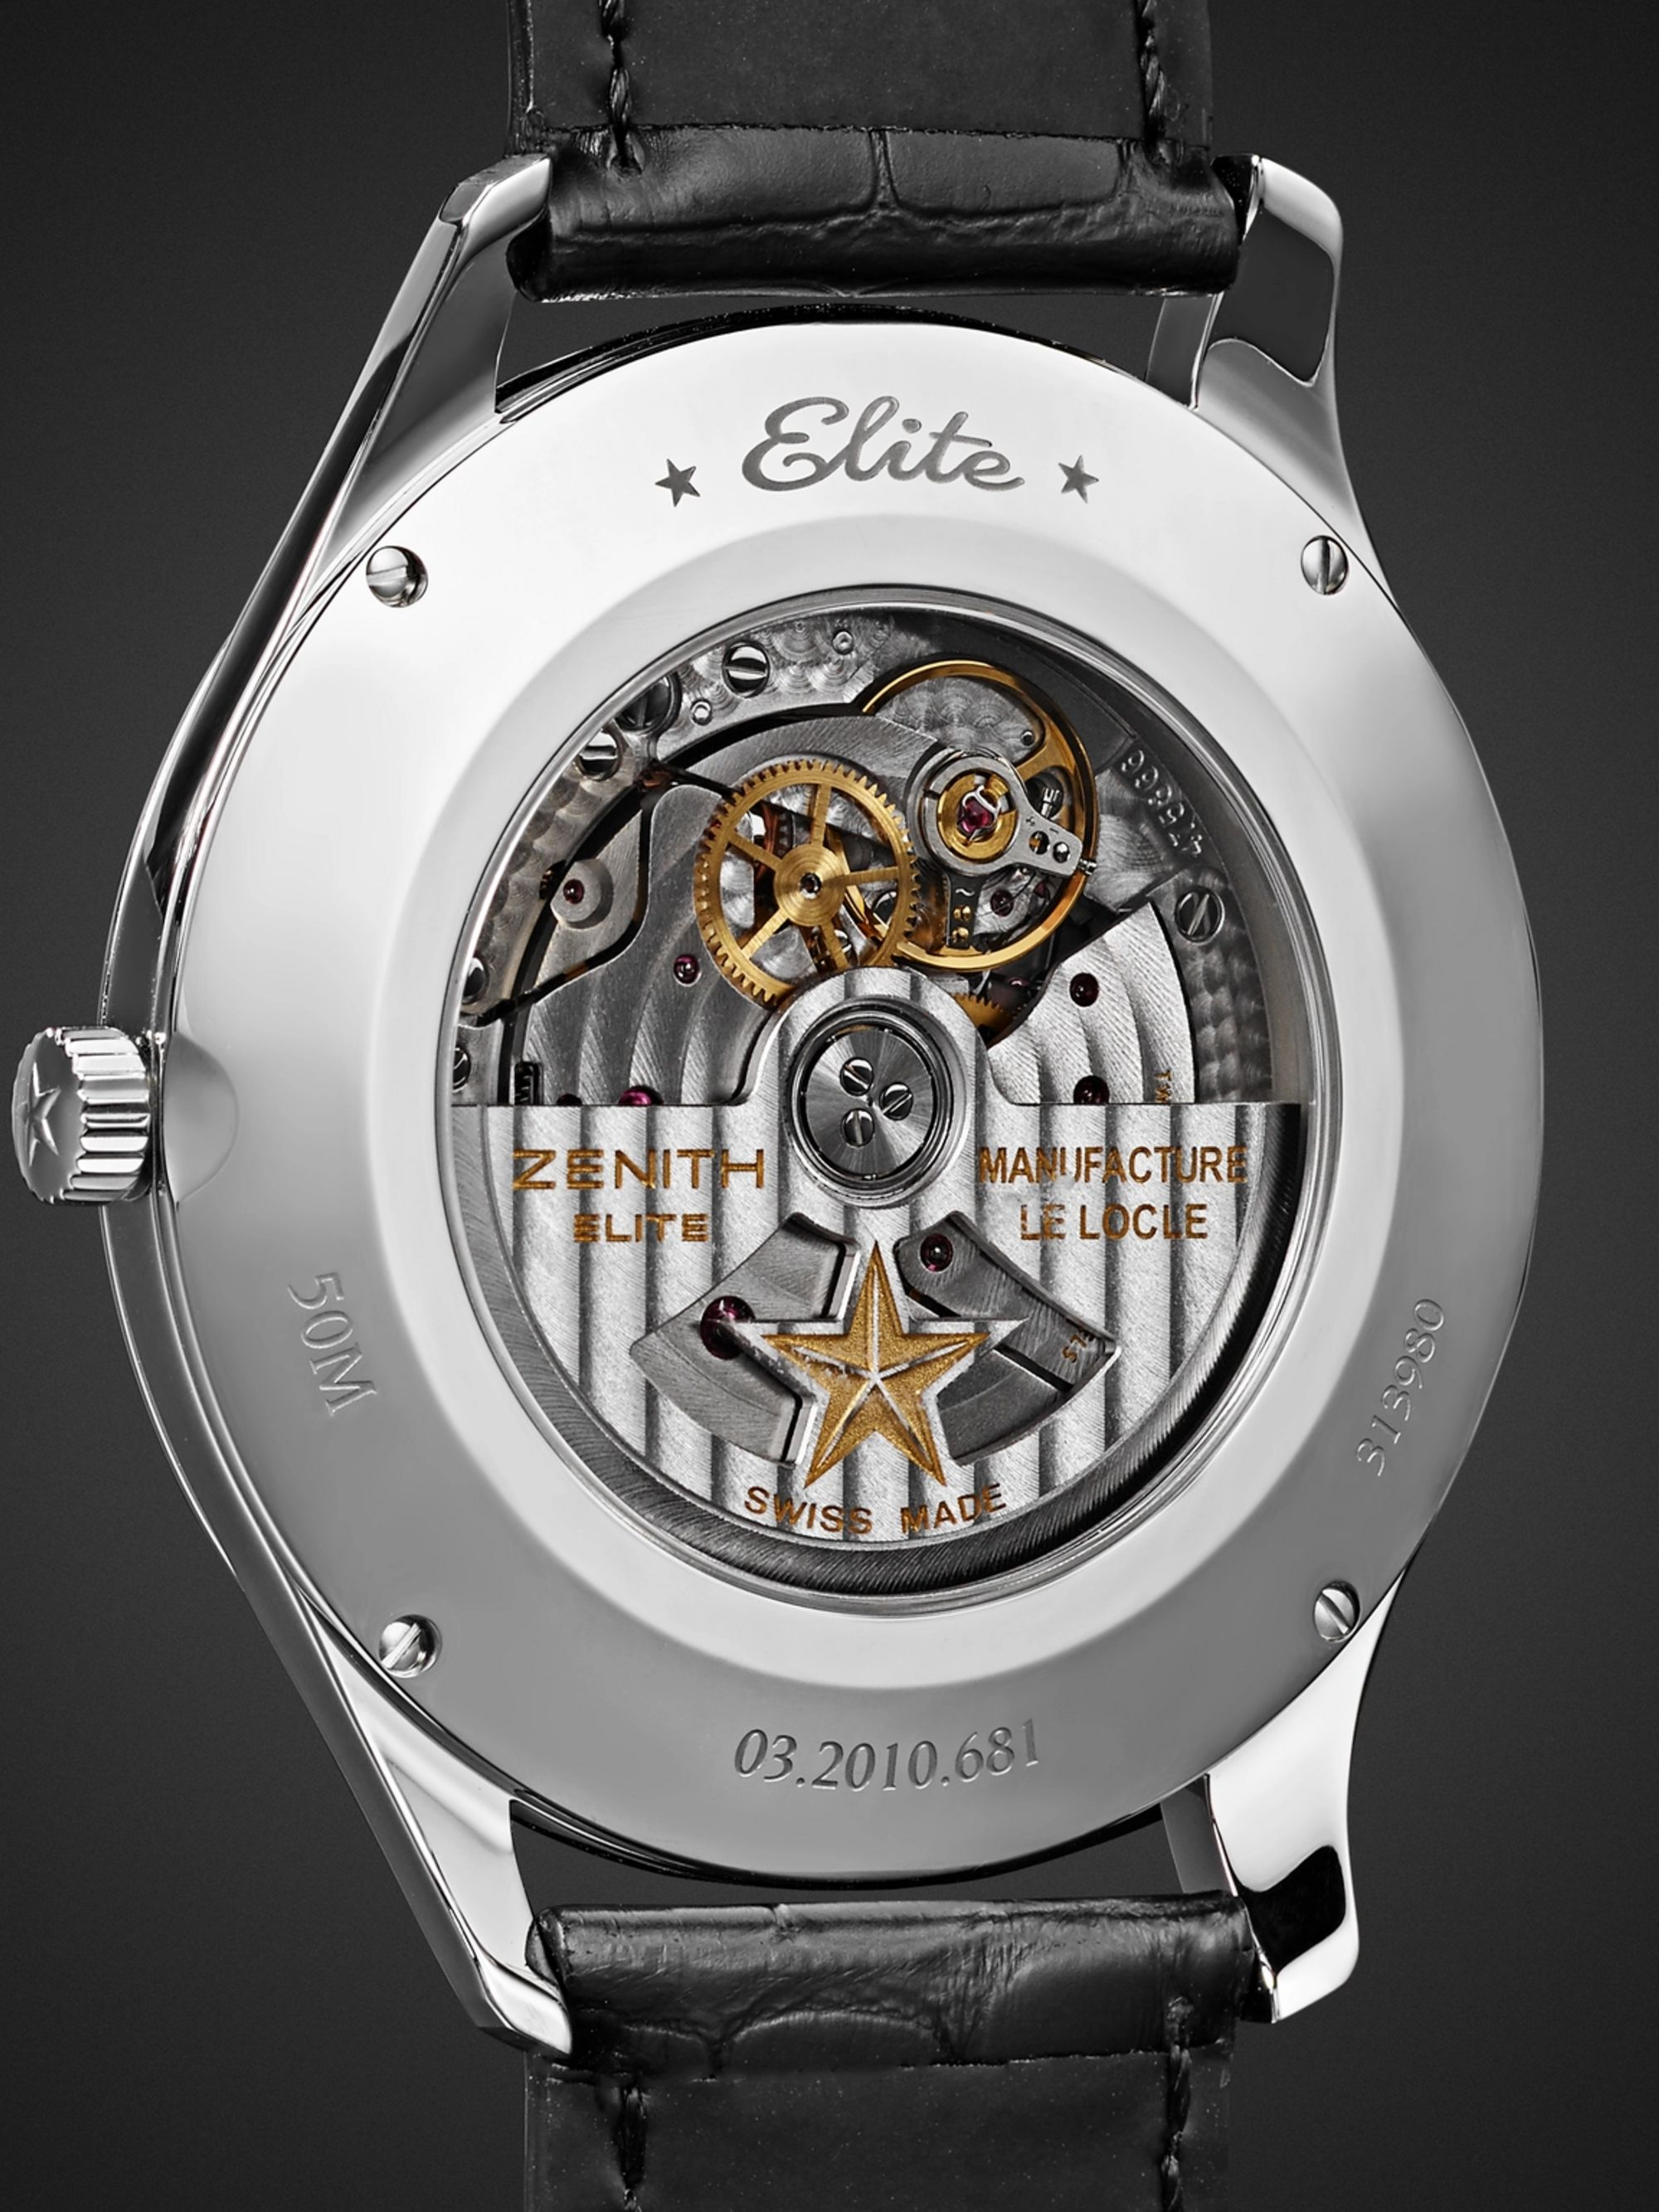 Zenith Elite Ultra-Thin Roman Dial 40mm Stainless Steel and Alligator Watch, Ref. No. 03.2010.681/11.C493